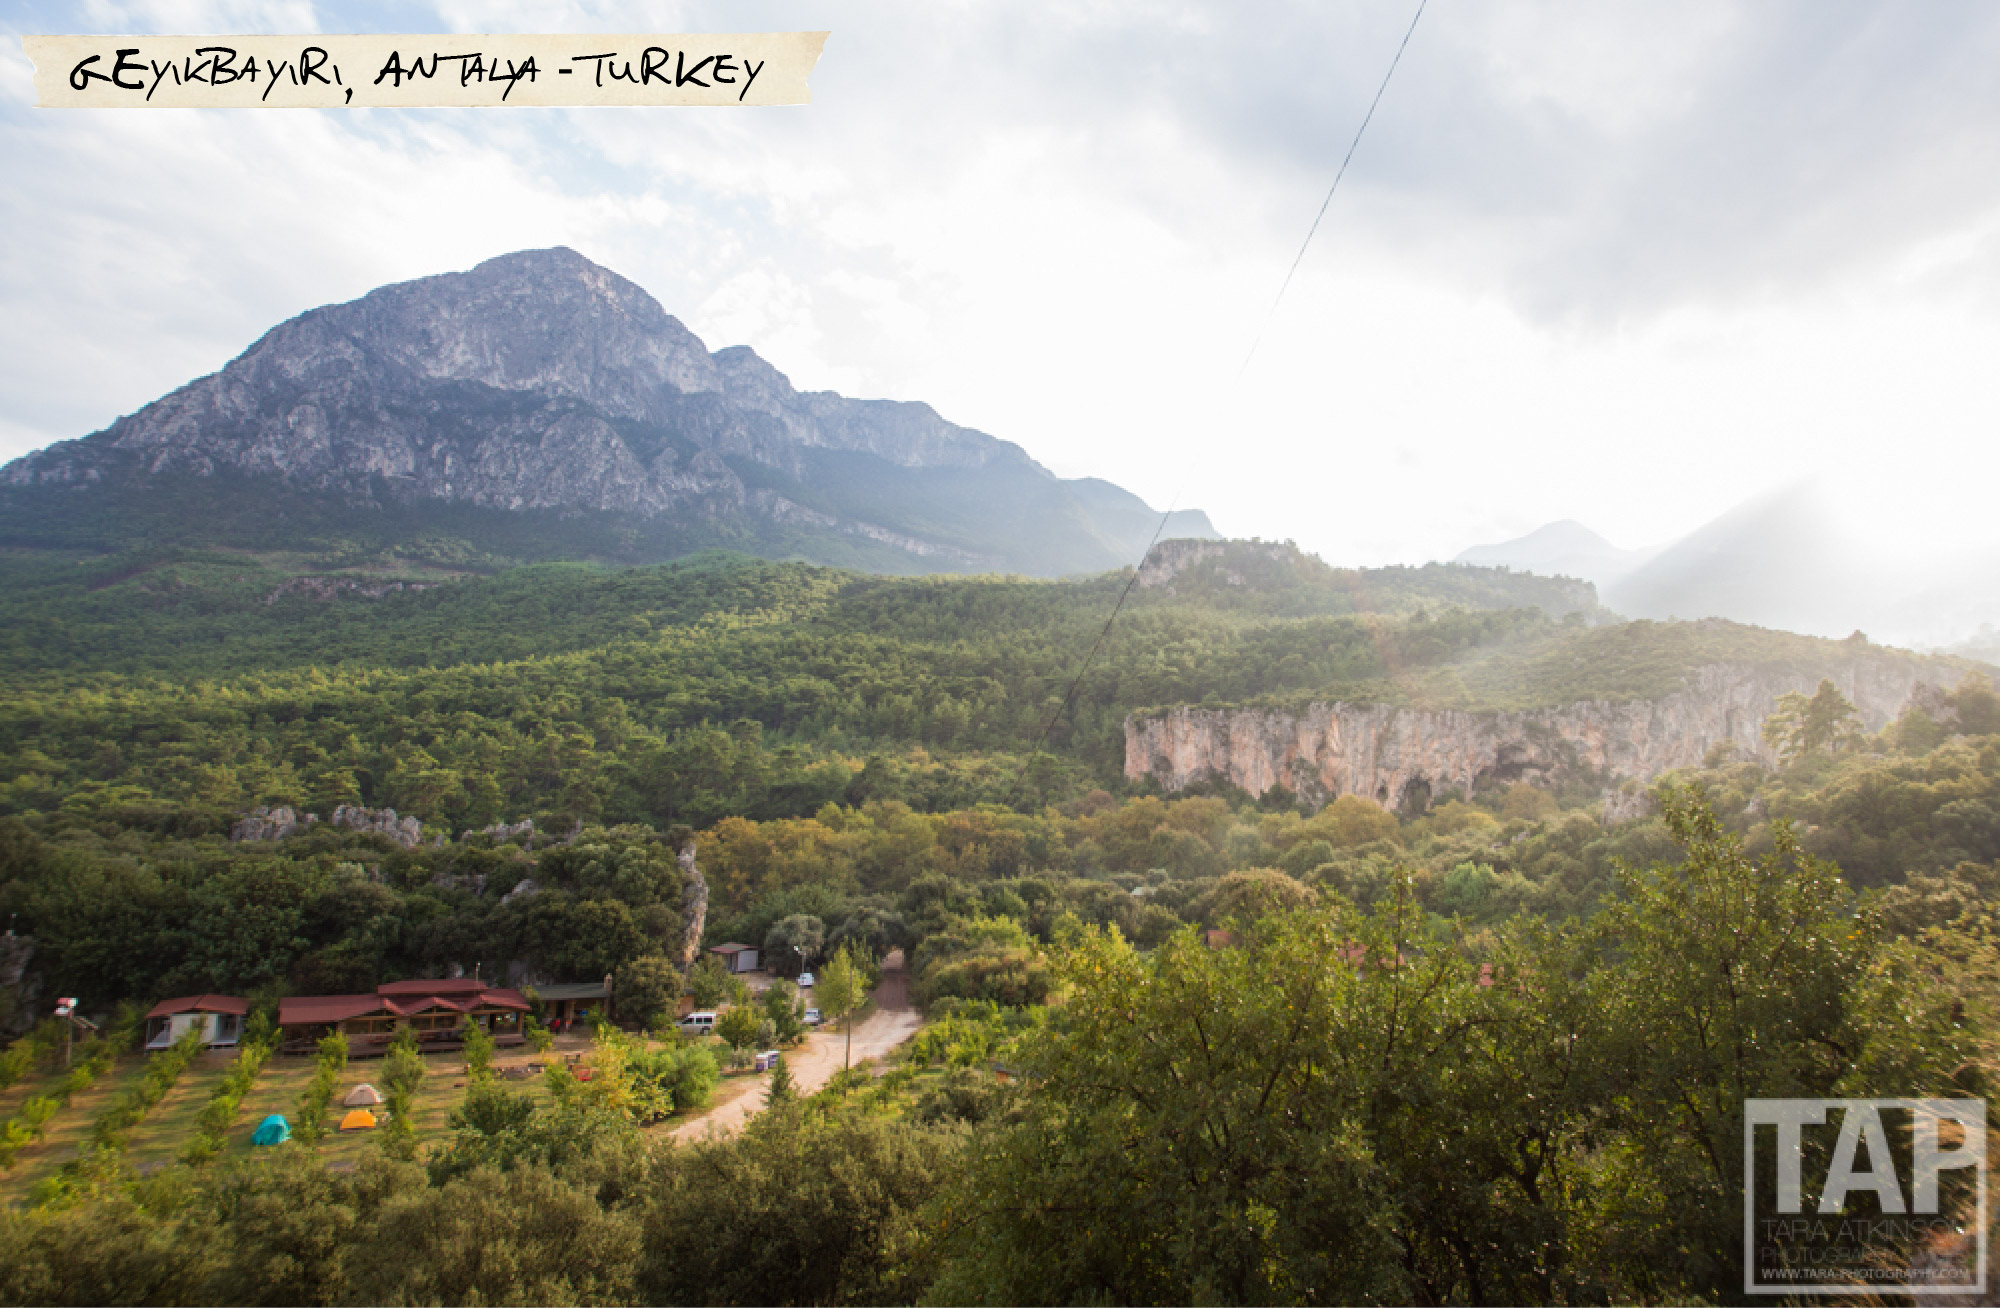 "Geyikbayiri is the largest sports climbing area in Turkey. The crag itself is situated 25km from the busy tourist city of Antalya, with the only ""tourists"" being rock climbers. The main crags are both north and south facing with several other buttresses which in total provide over 850 routes across all grades."